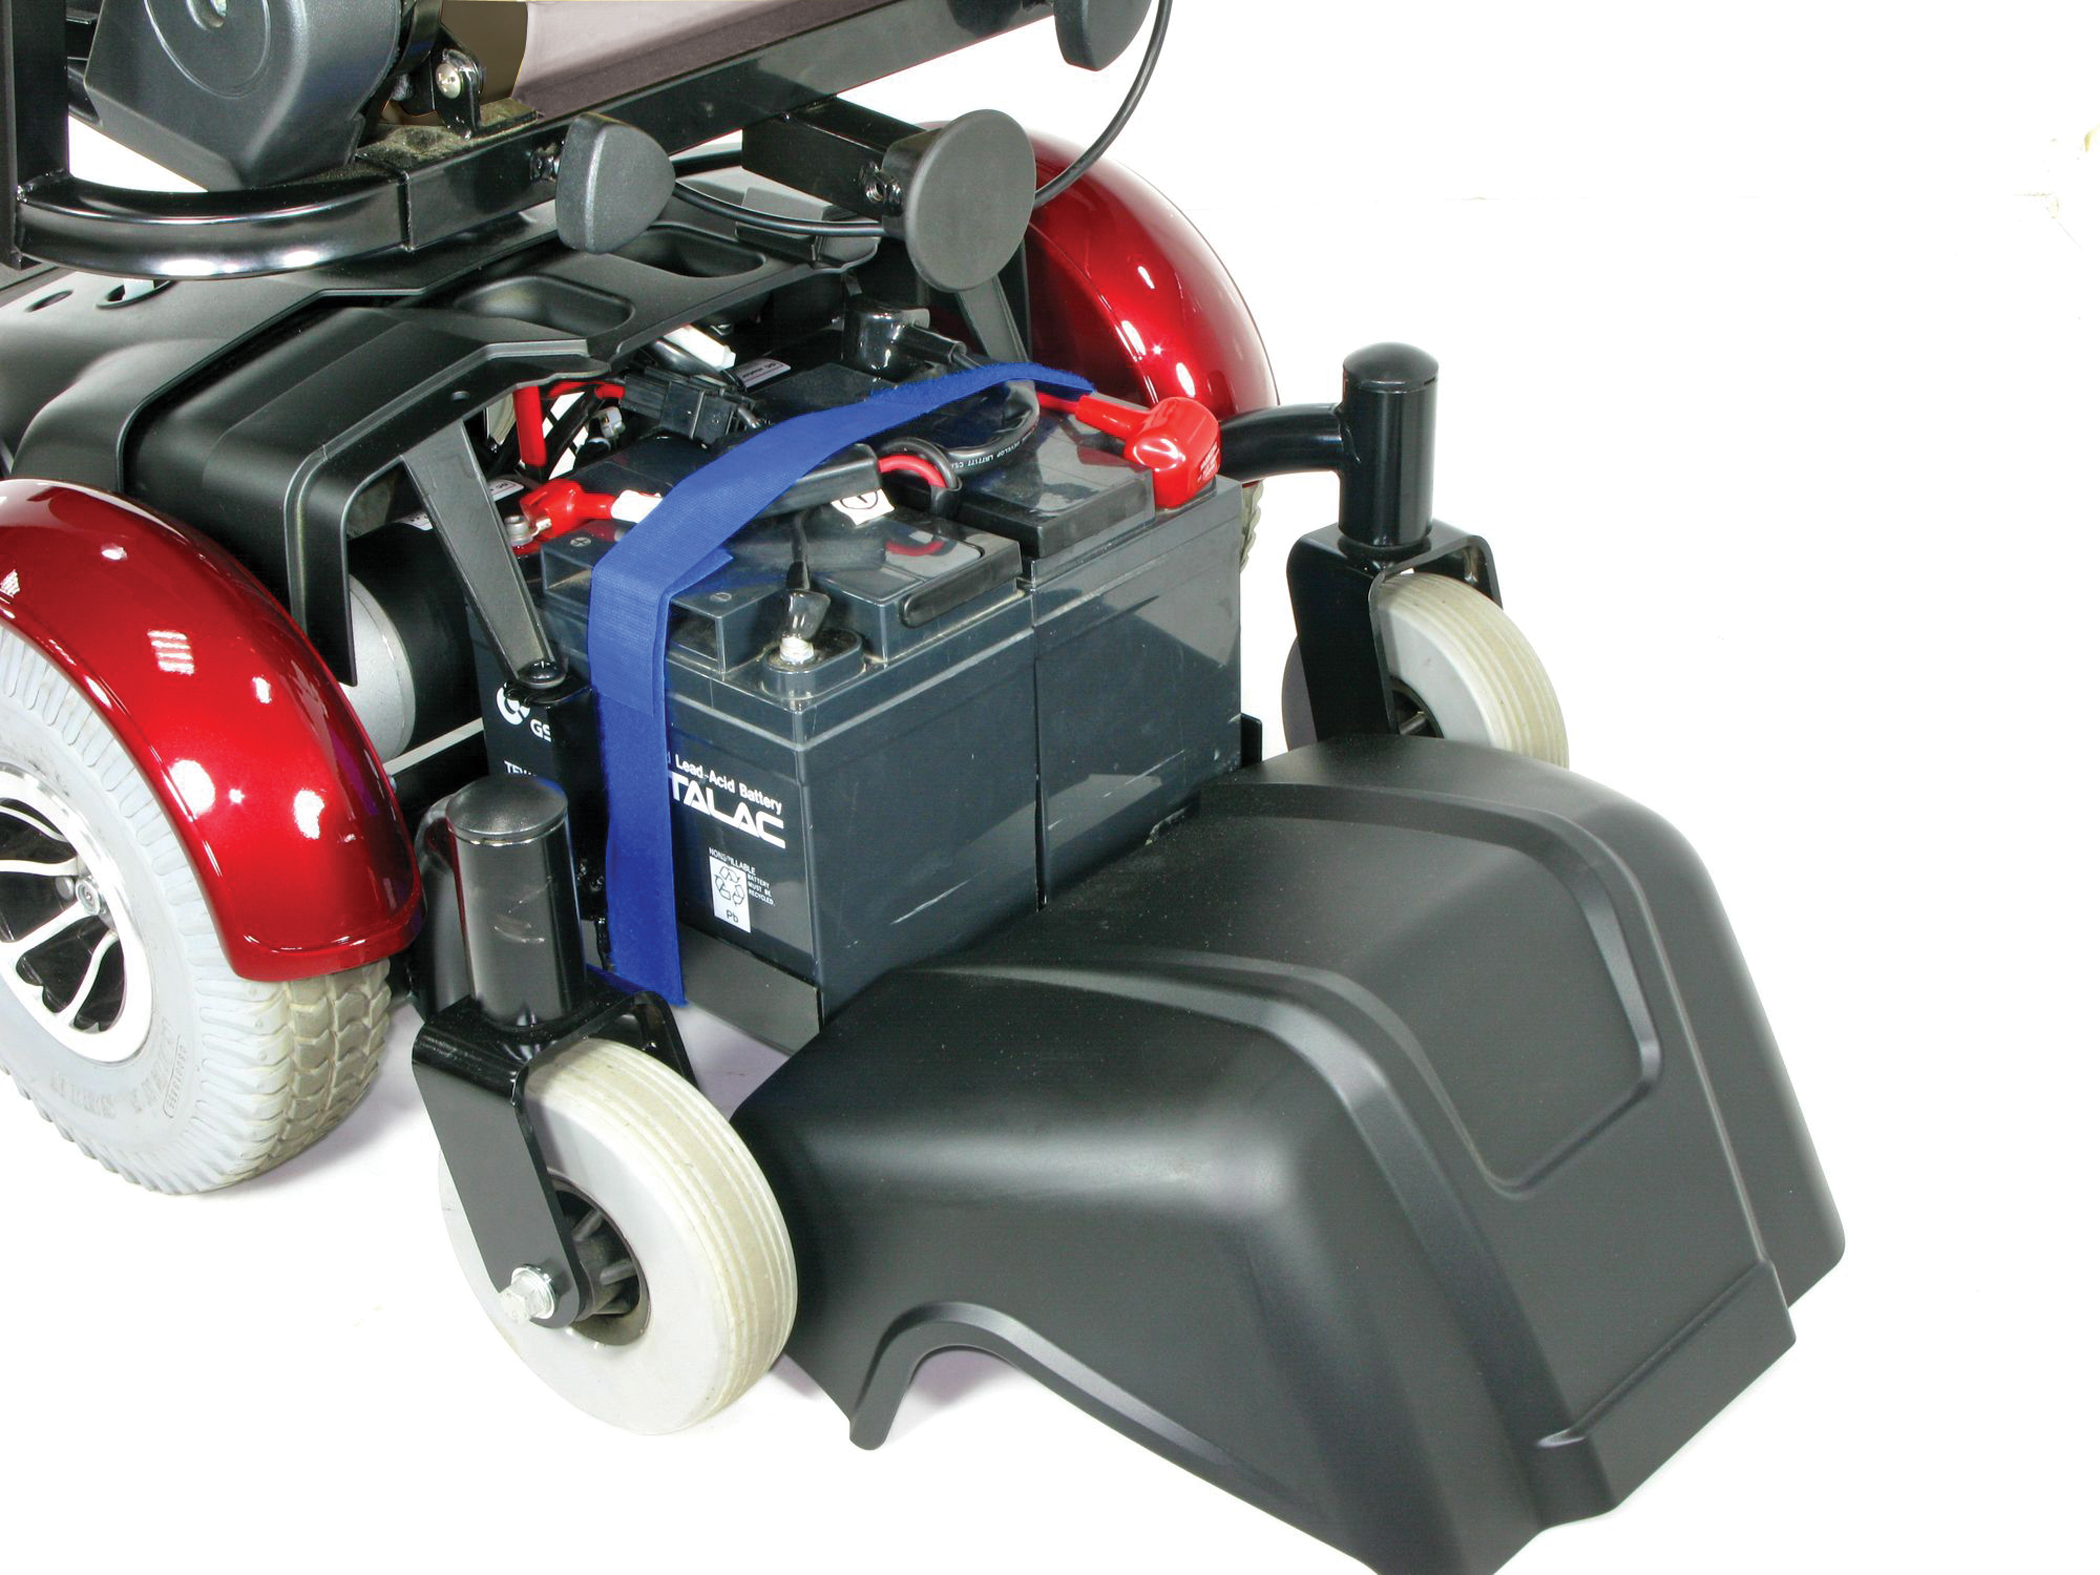 "Image EC Mid Wheel Drive Power Wheelchair 20"" - 2800ecbu-rcl-20-powerchair2800ecbu-rcle.jpg"